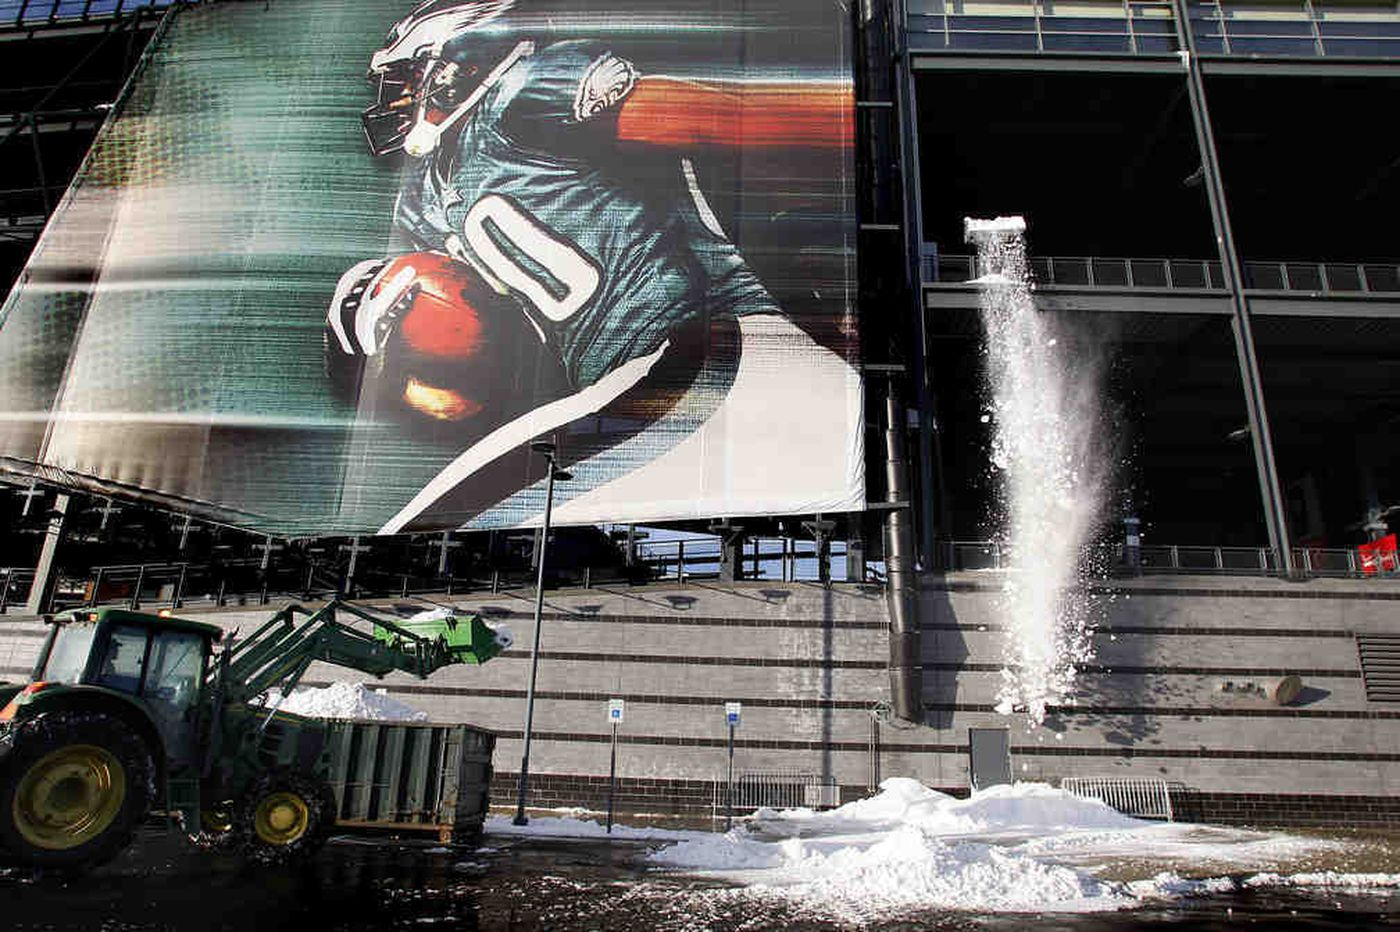 Eagles' big dig on schedule